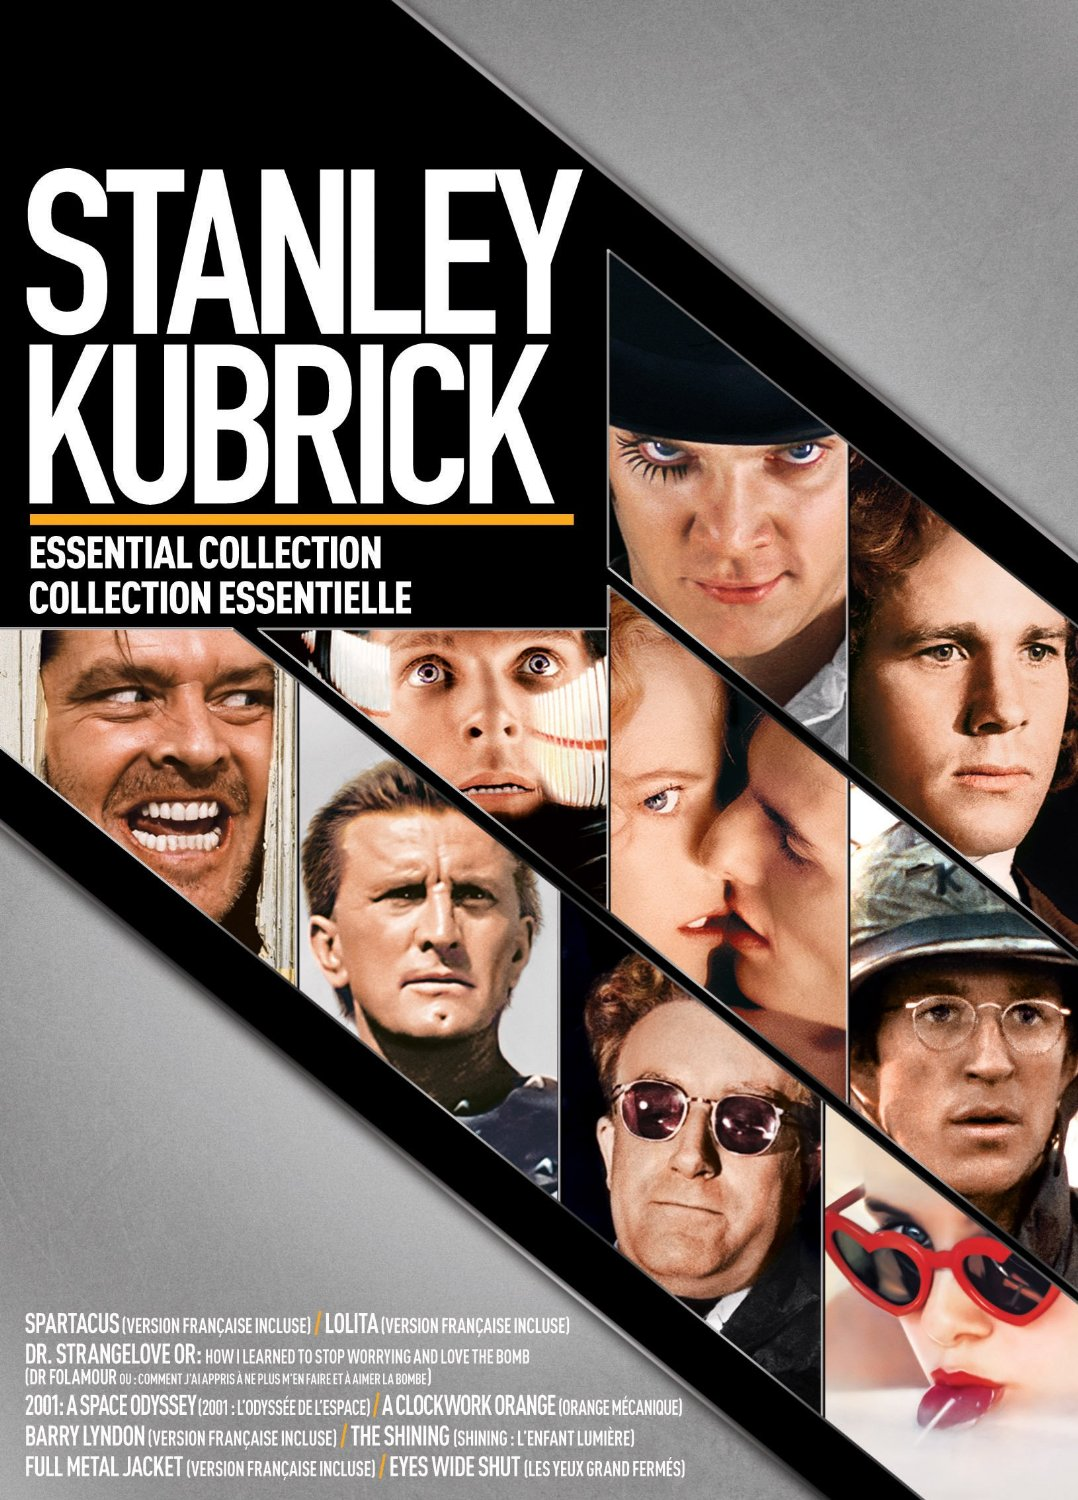 coffret dvd de stanley kubrick id e cadeau qu bec. Black Bedroom Furniture Sets. Home Design Ideas